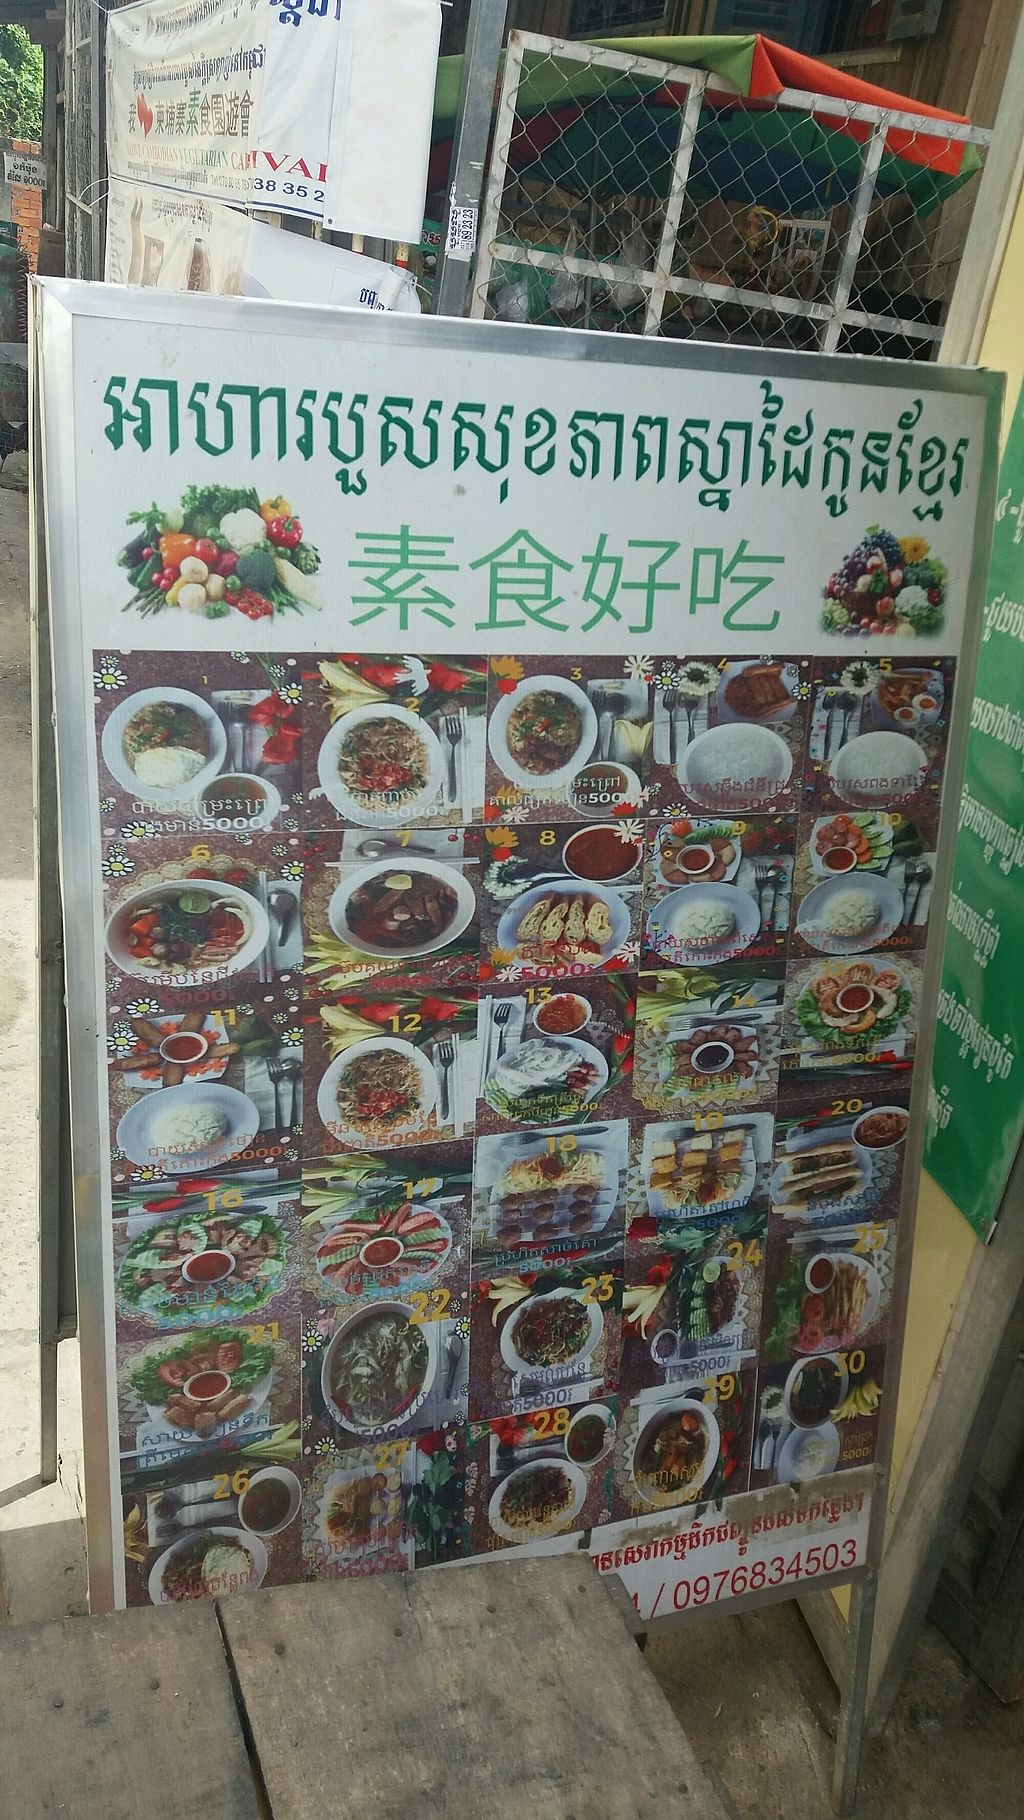 "Photo of Chinese Cambodian Vegetarian Restaurant  by <a href=""/members/profile/%E1%9E%92%E1%9E%B8%E1%9E%98%E1%9F%89%E1%9E%BC%E1%9E%90%E1%9F%81%E1%9E%9F%E1%9F%92%E1%9E%9C%E1%9E%B6%E1%9E%93"">ធីម៉ូថេស្វាន</a> <br/>Chinese Cambodian vegetarian restaurant <br/> December 4, 2017  - <a href='/contact/abuse/image/106342/332168'>Report</a>"